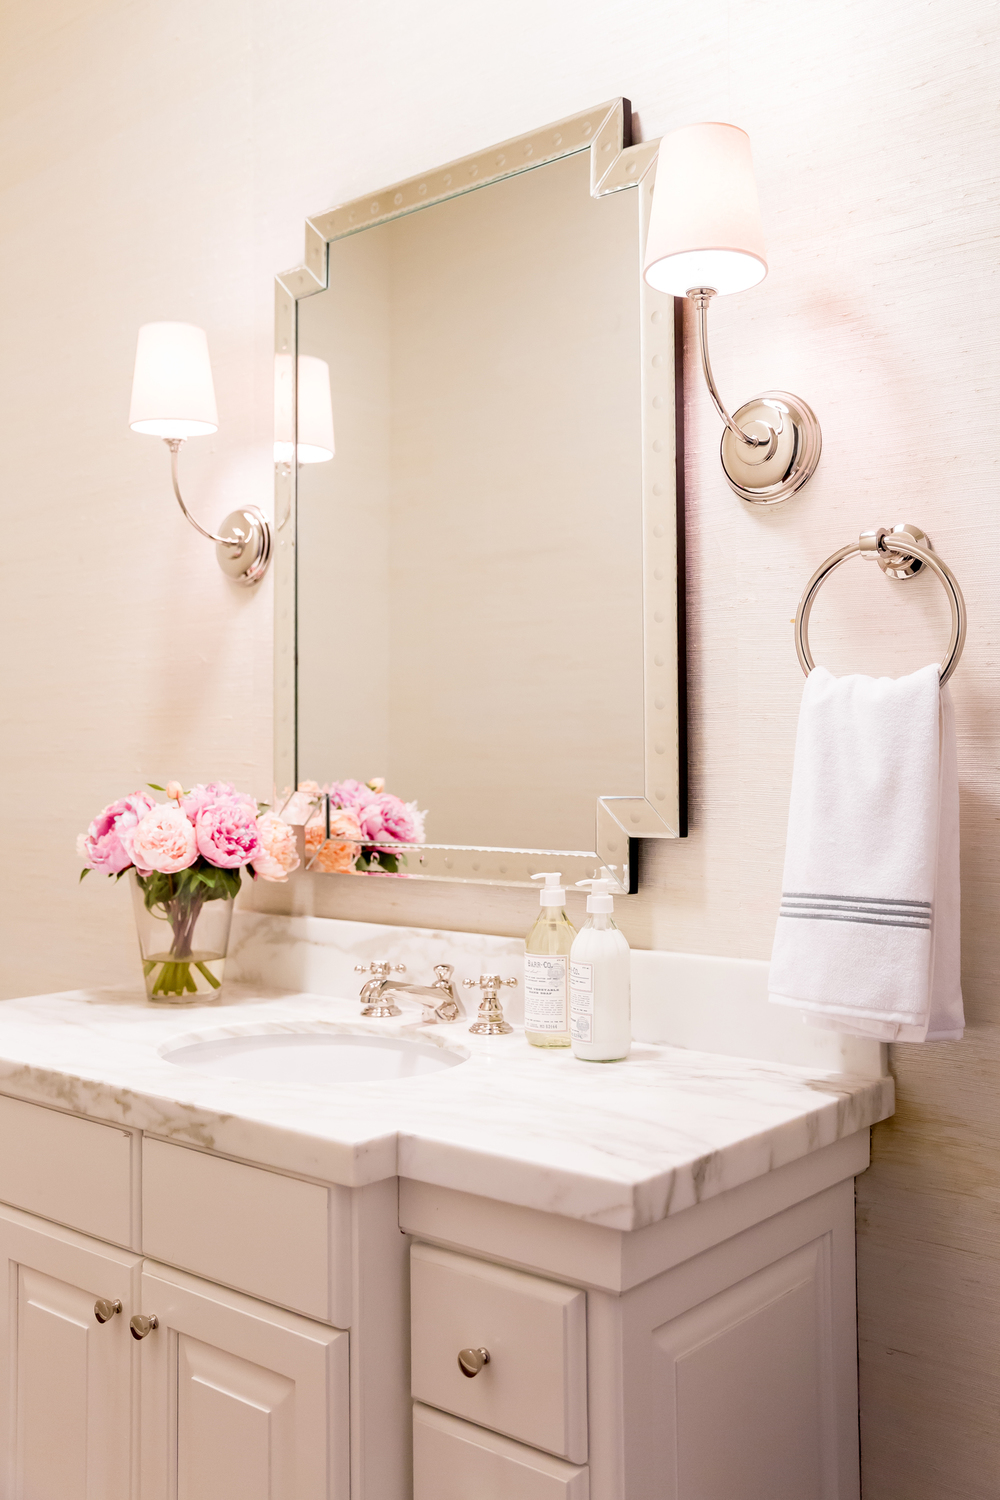 White bathroom vanity with mirror